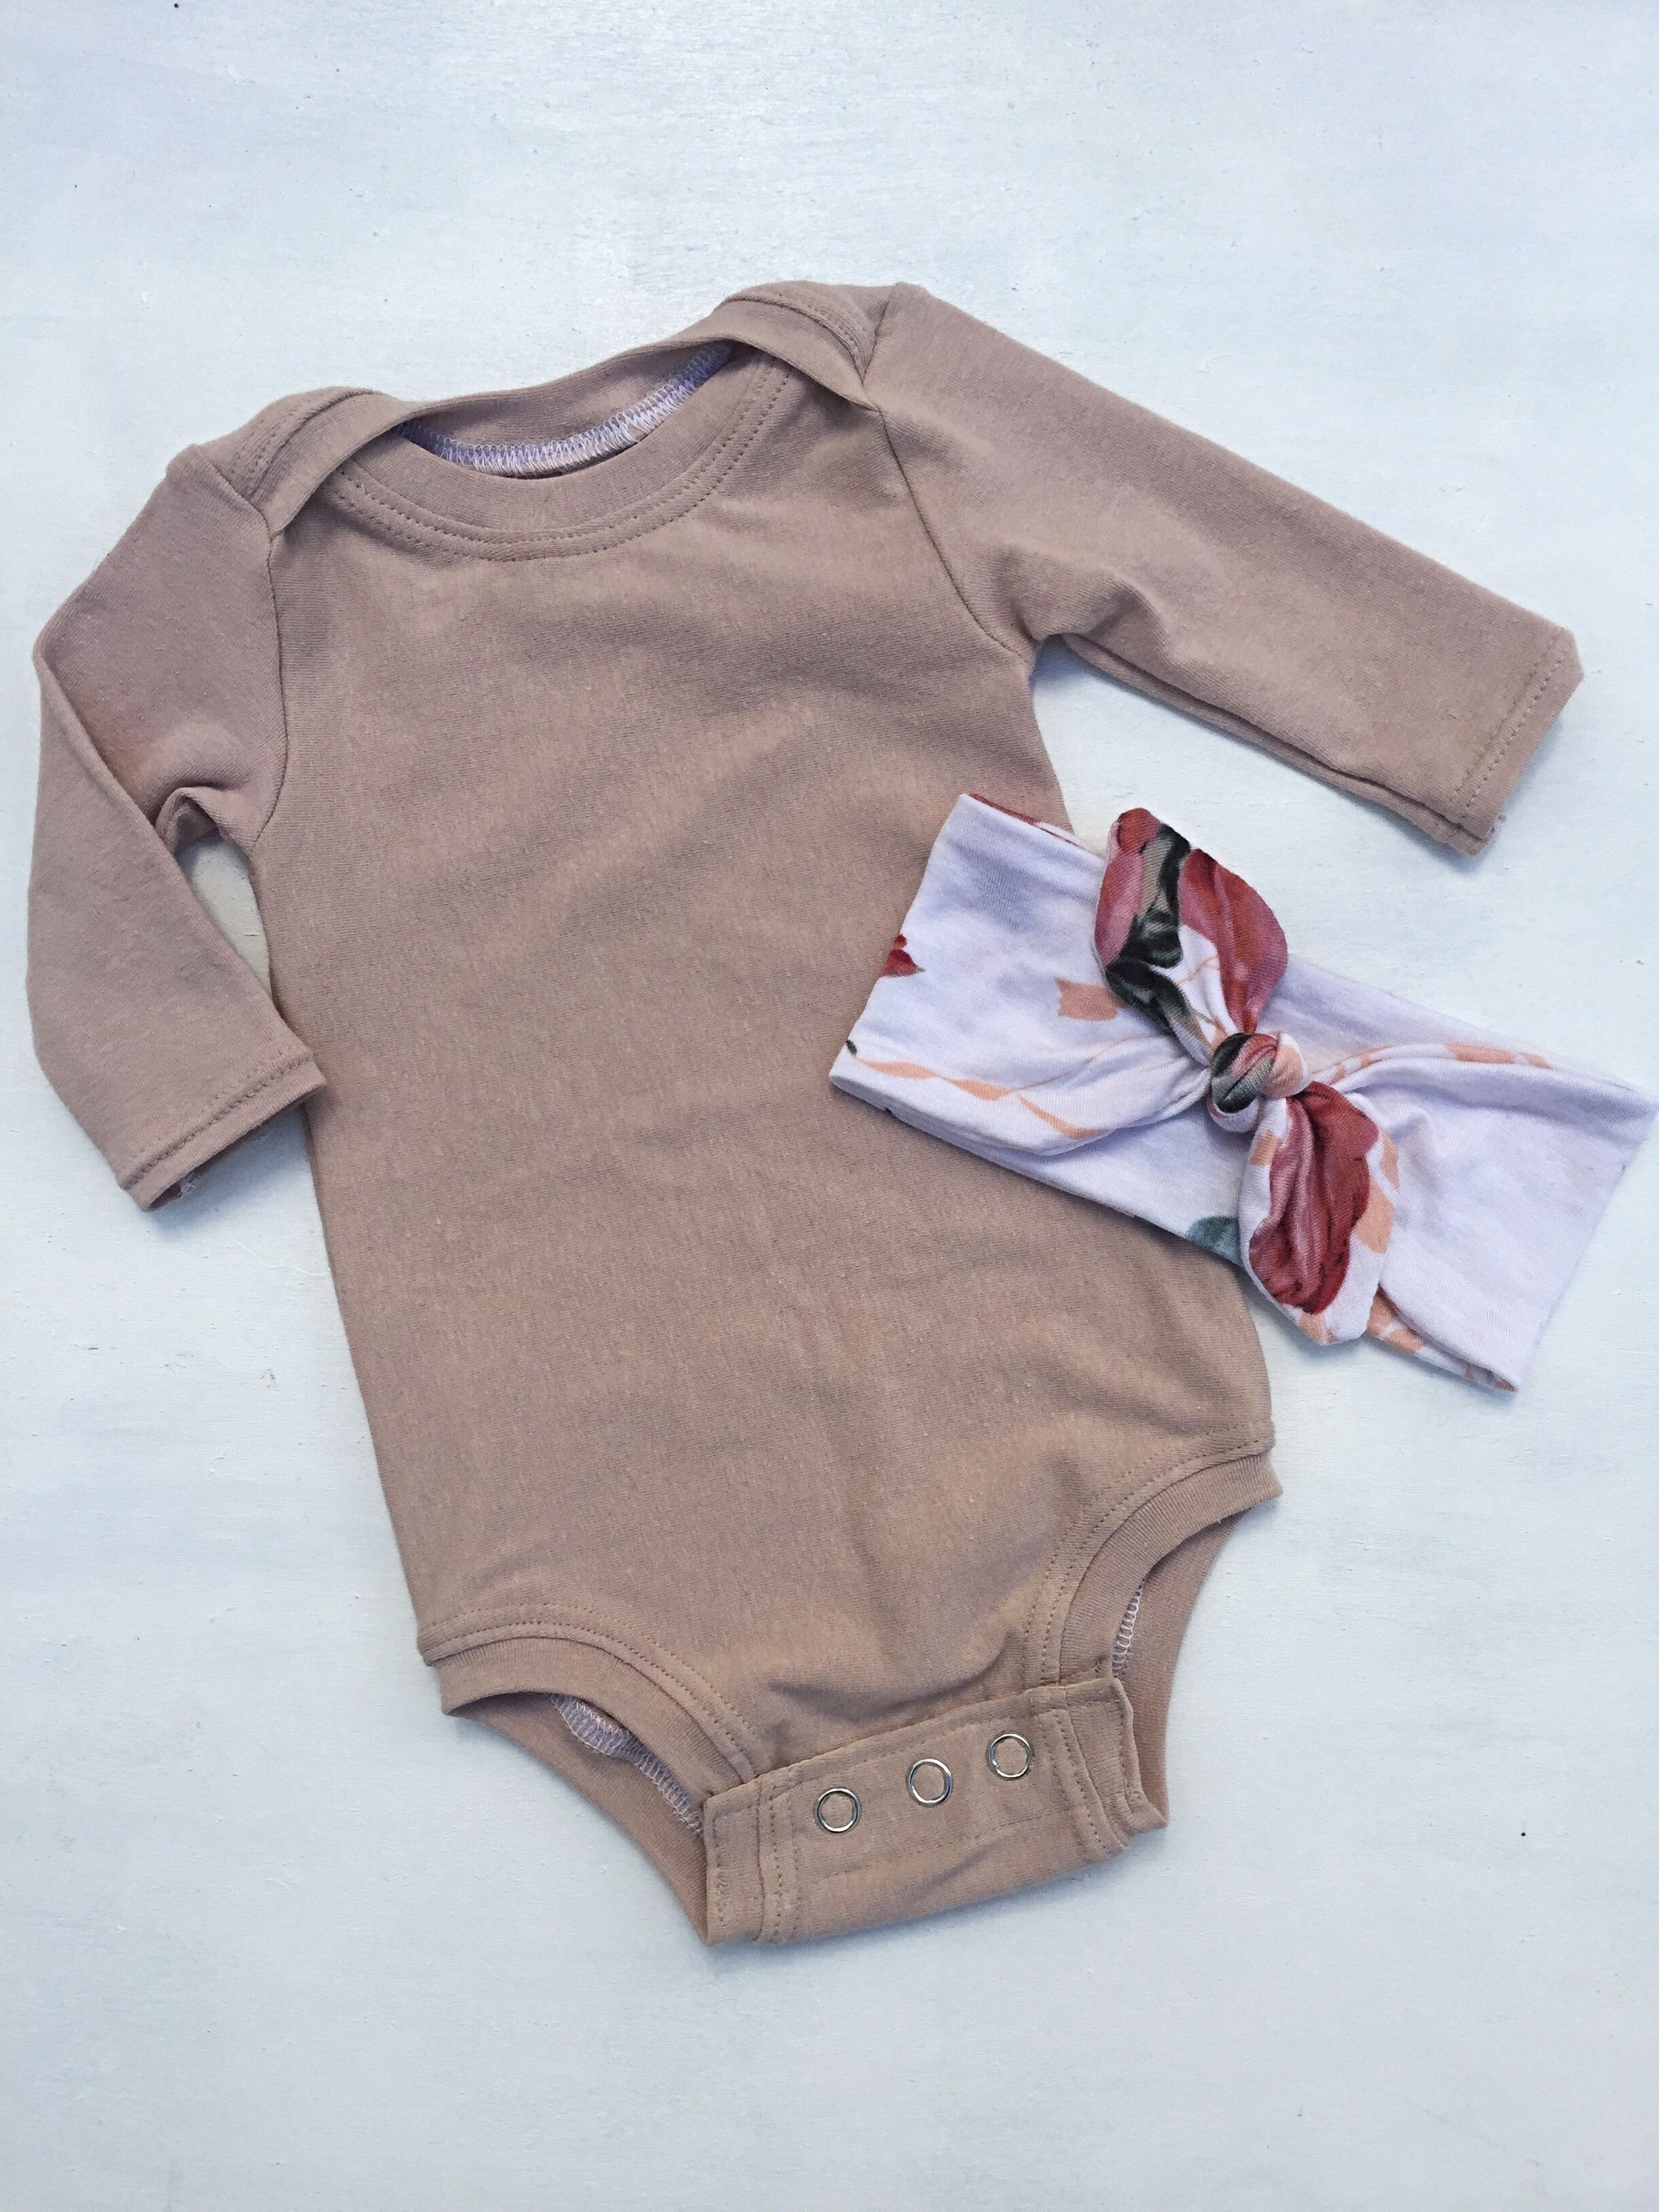 9c5cd674bee98 Nude baby bodysuit,solid color bodysuit,one piece outfit,cute baby clothes, baby head wrap,long sleeve bodysuit,baby head bow,baby clothes $30.00 2  available